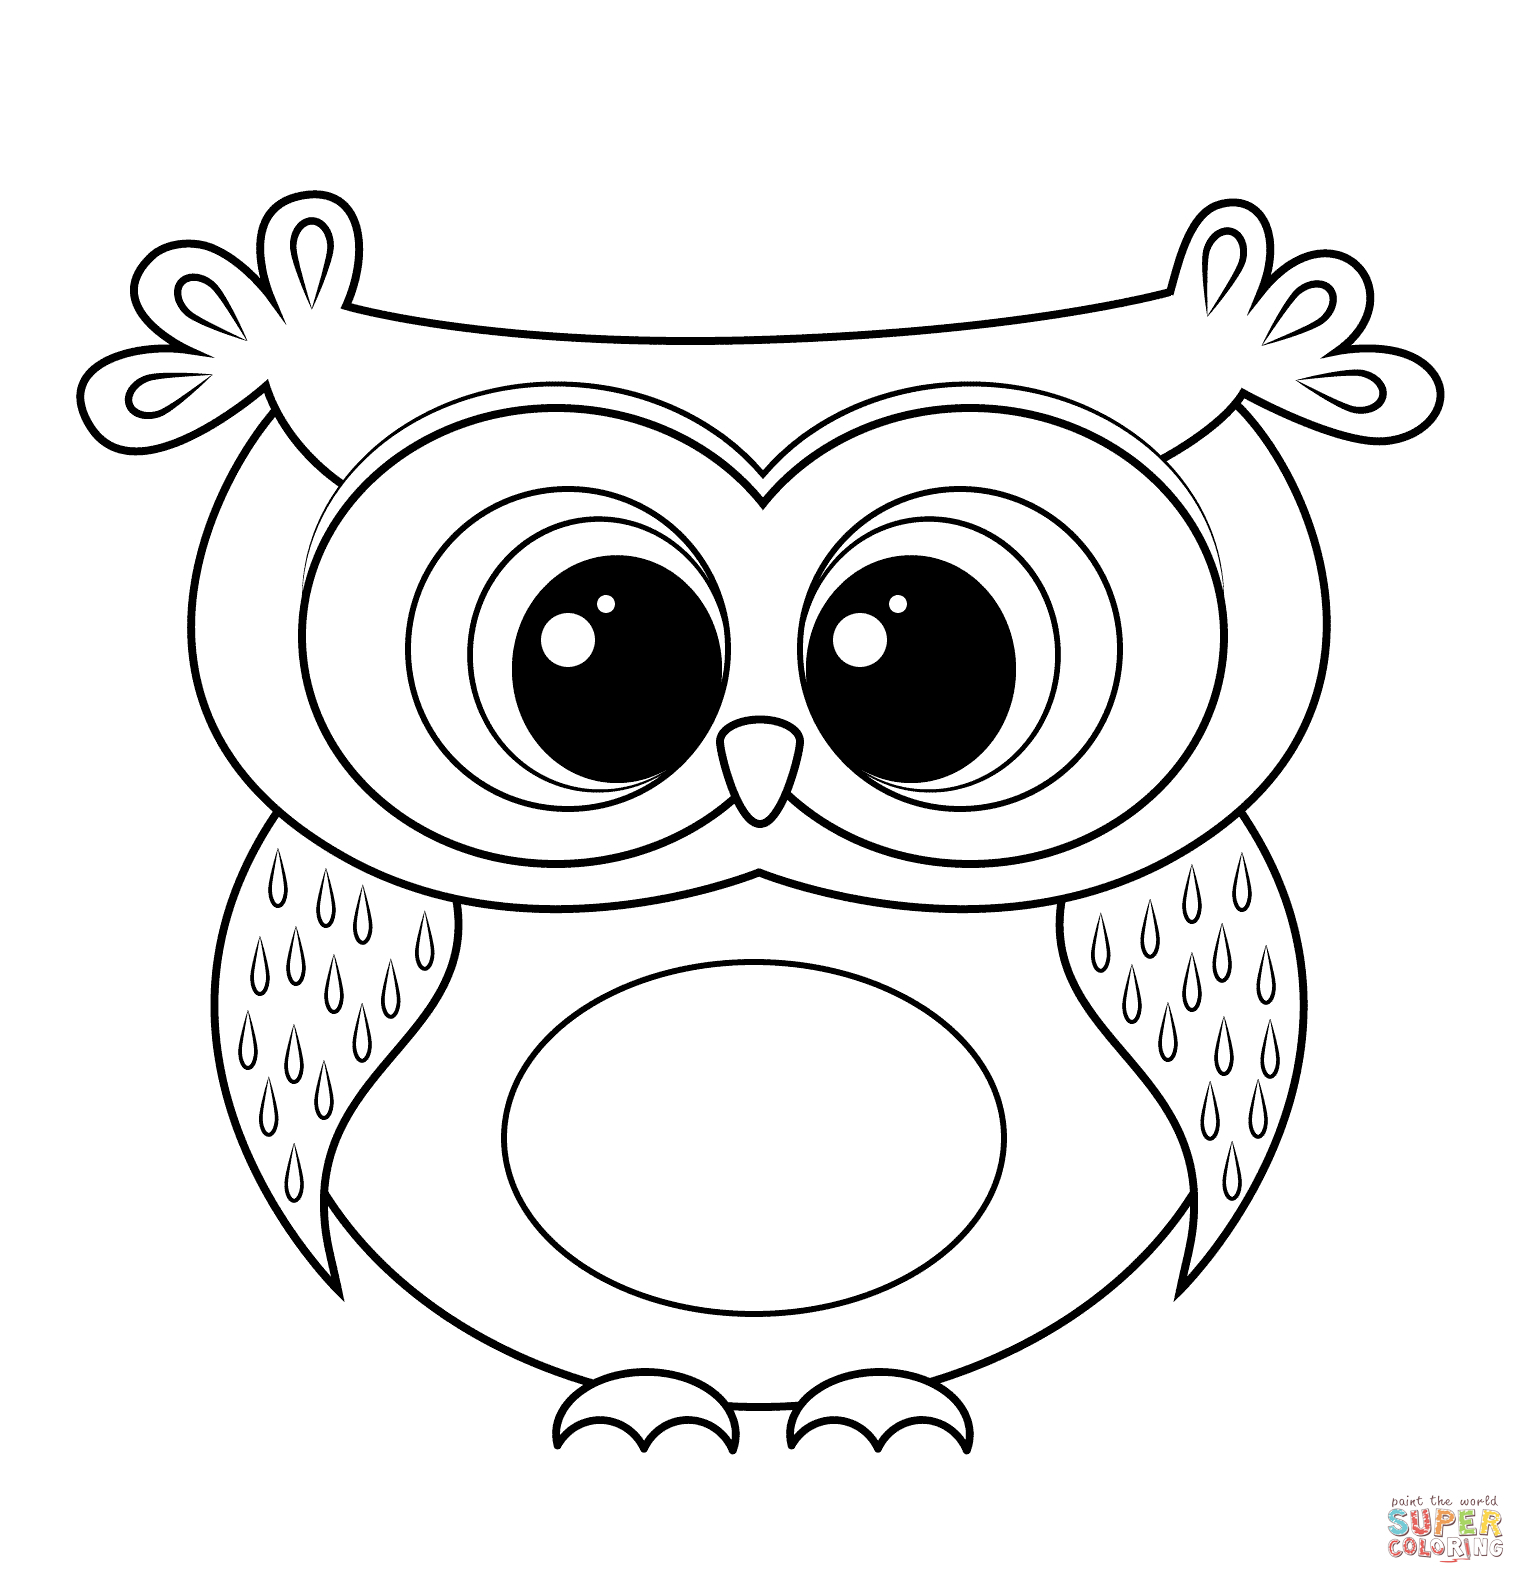 1526x1584 Cartoon Drawings Of Owls How To Draw Cartoon Owl Drawing Lesson